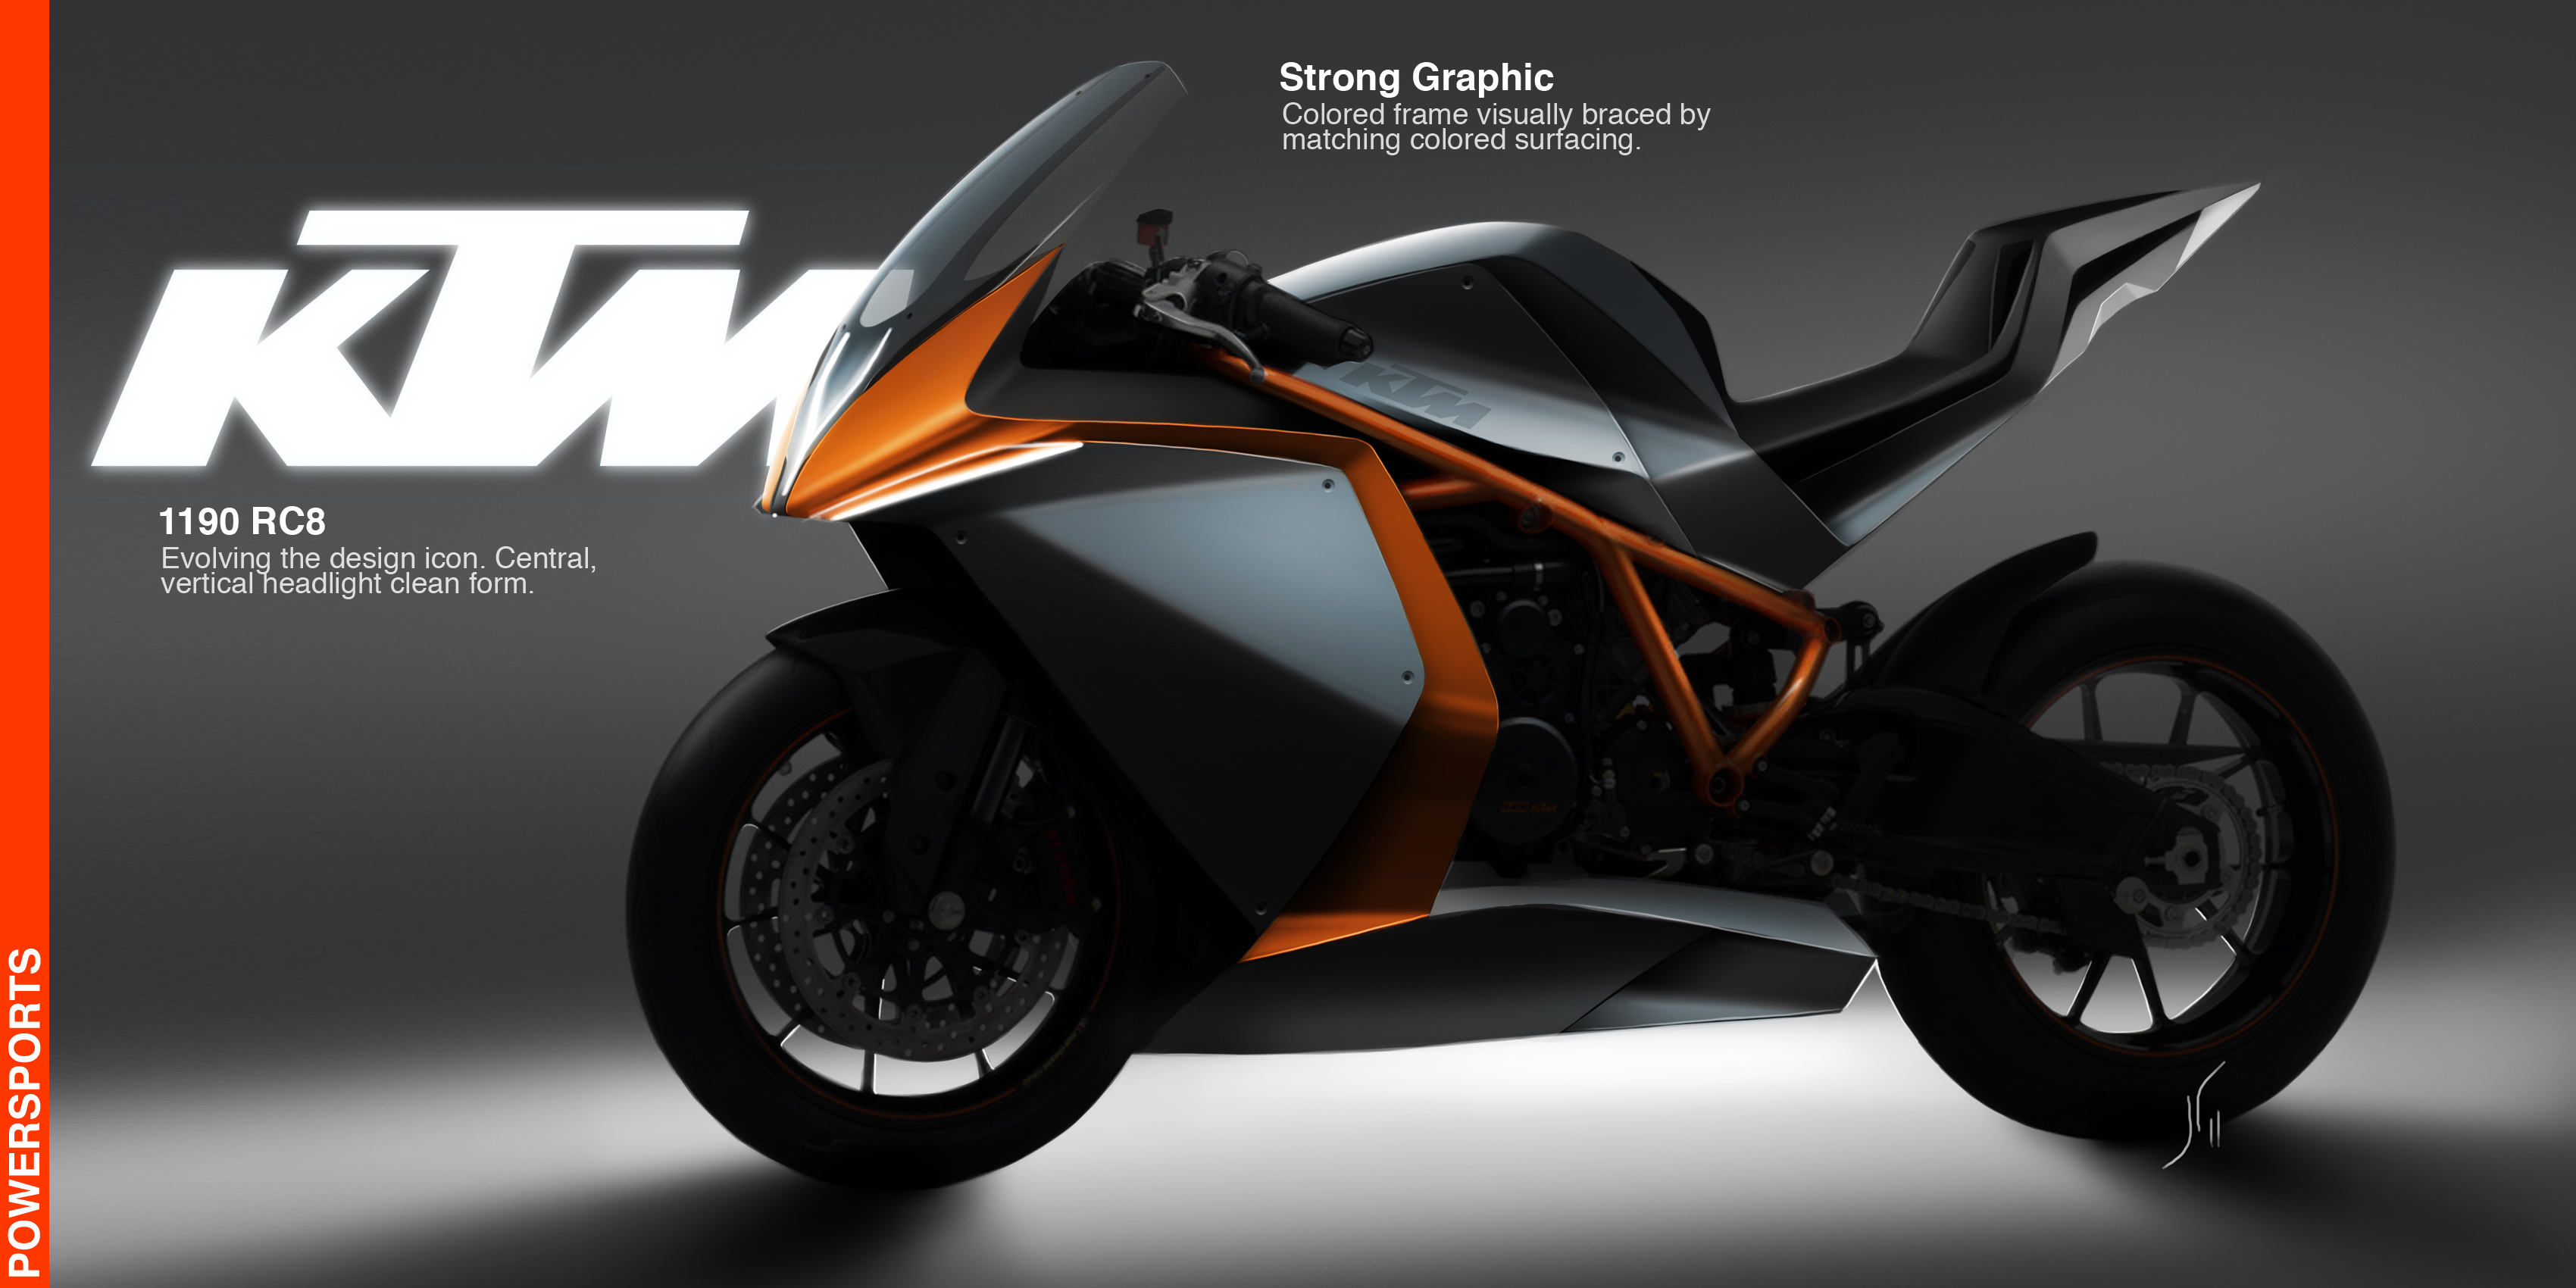 ktm is an austrian motorcycle company founded in 1934engineer